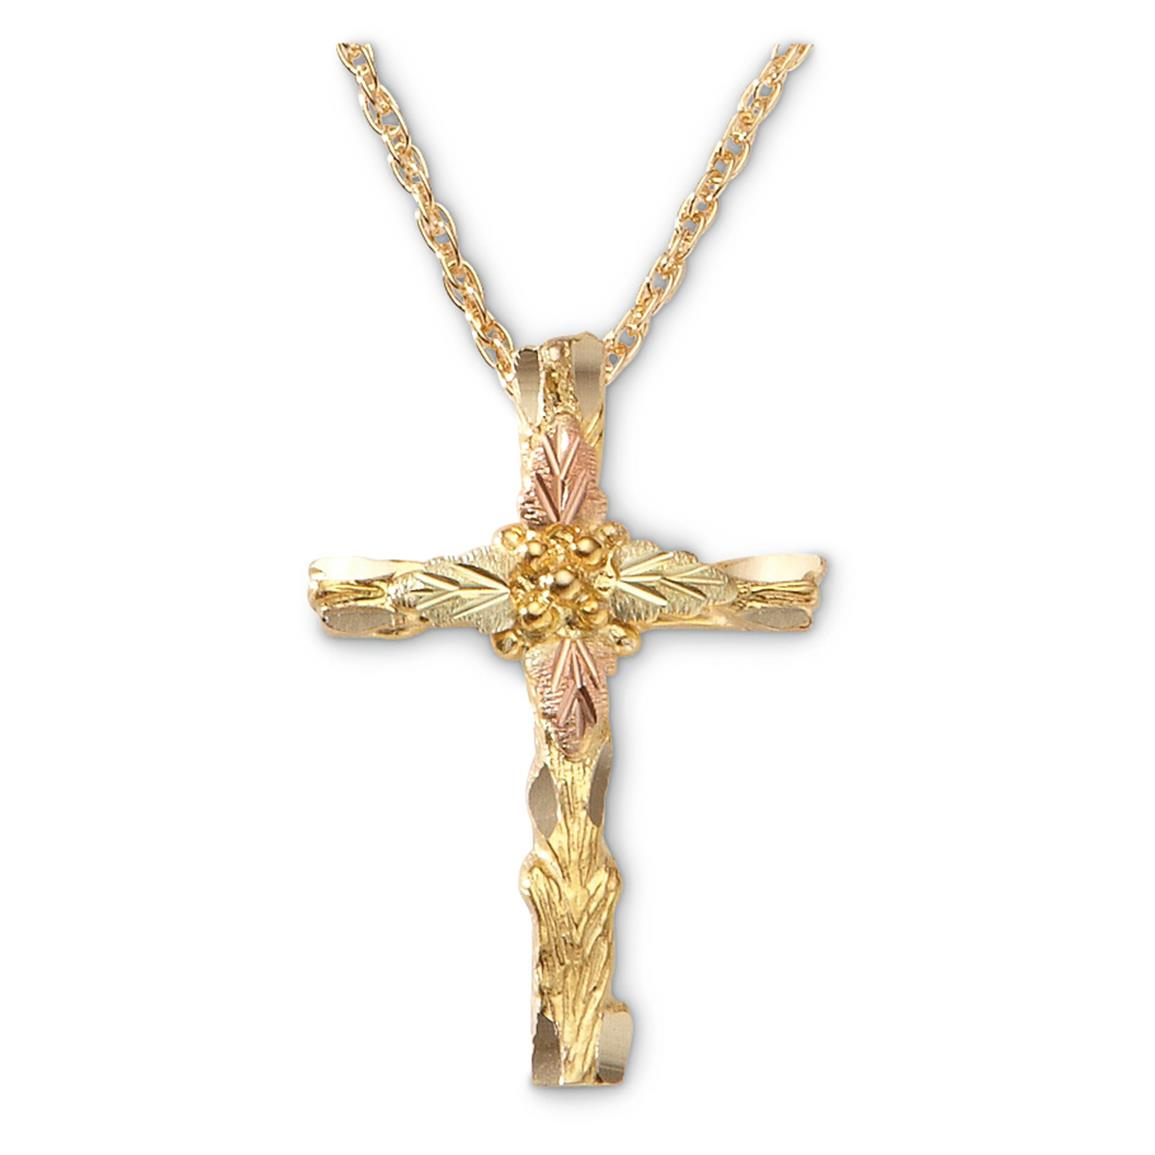 Mt. Rushmore Black Hills Gold Cross Necklace, Gold